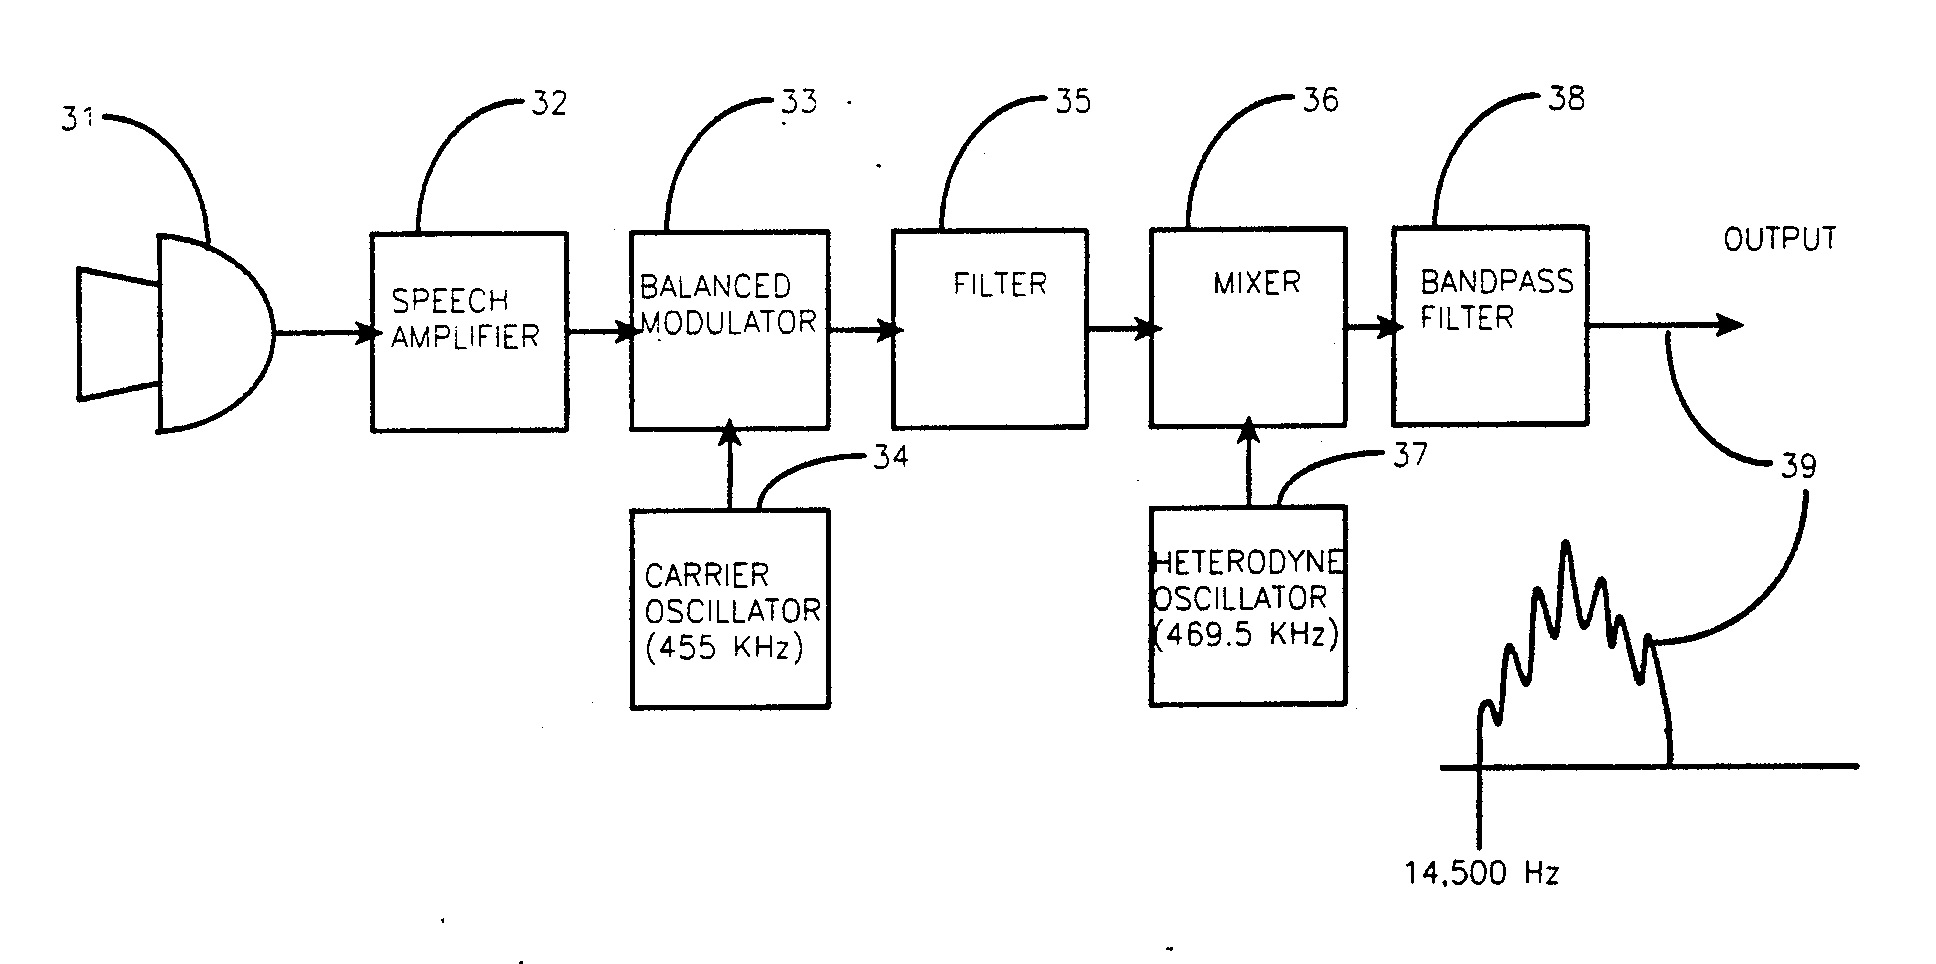 hight resolution of block diagram figure 3 from the patent